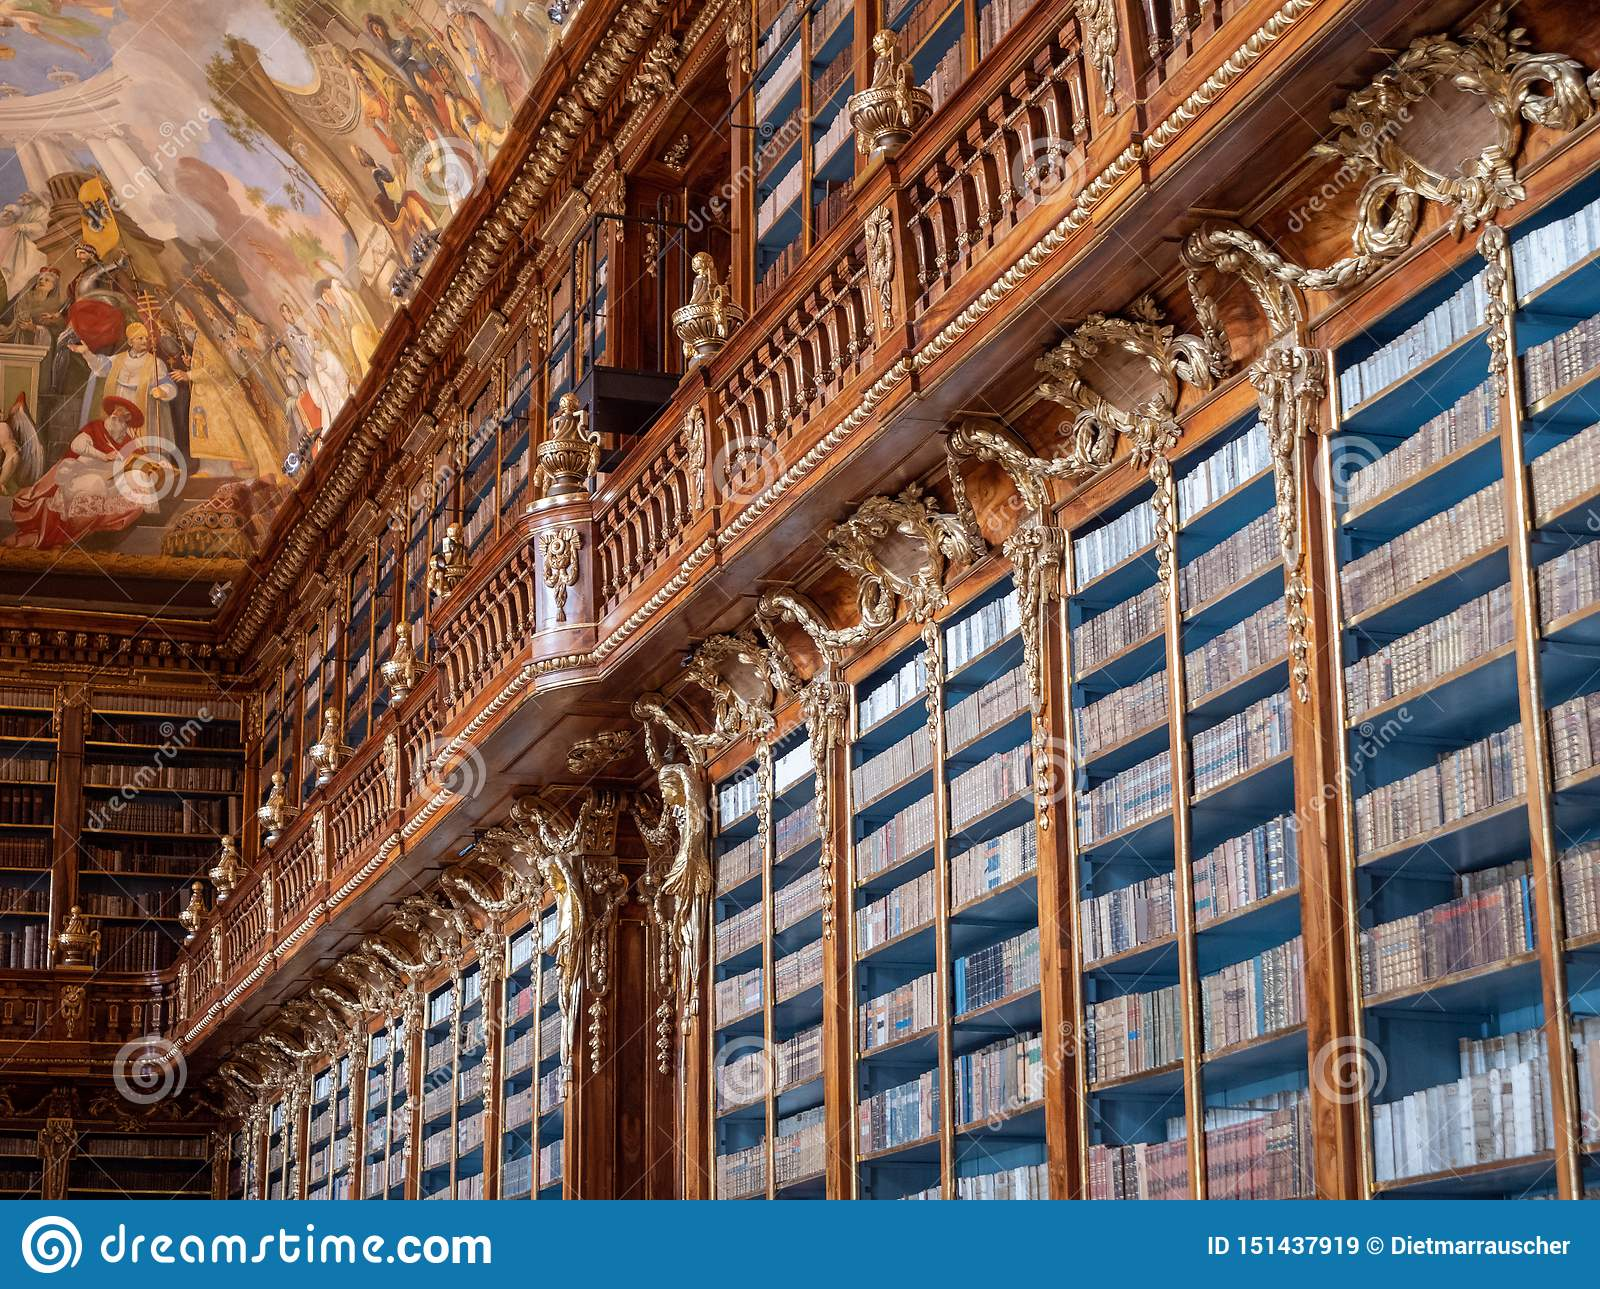 Bookshelf In Strahov Monastery Library - Philosophical Hall Editorial Stock Image - Image of philosophical. building: 151437919